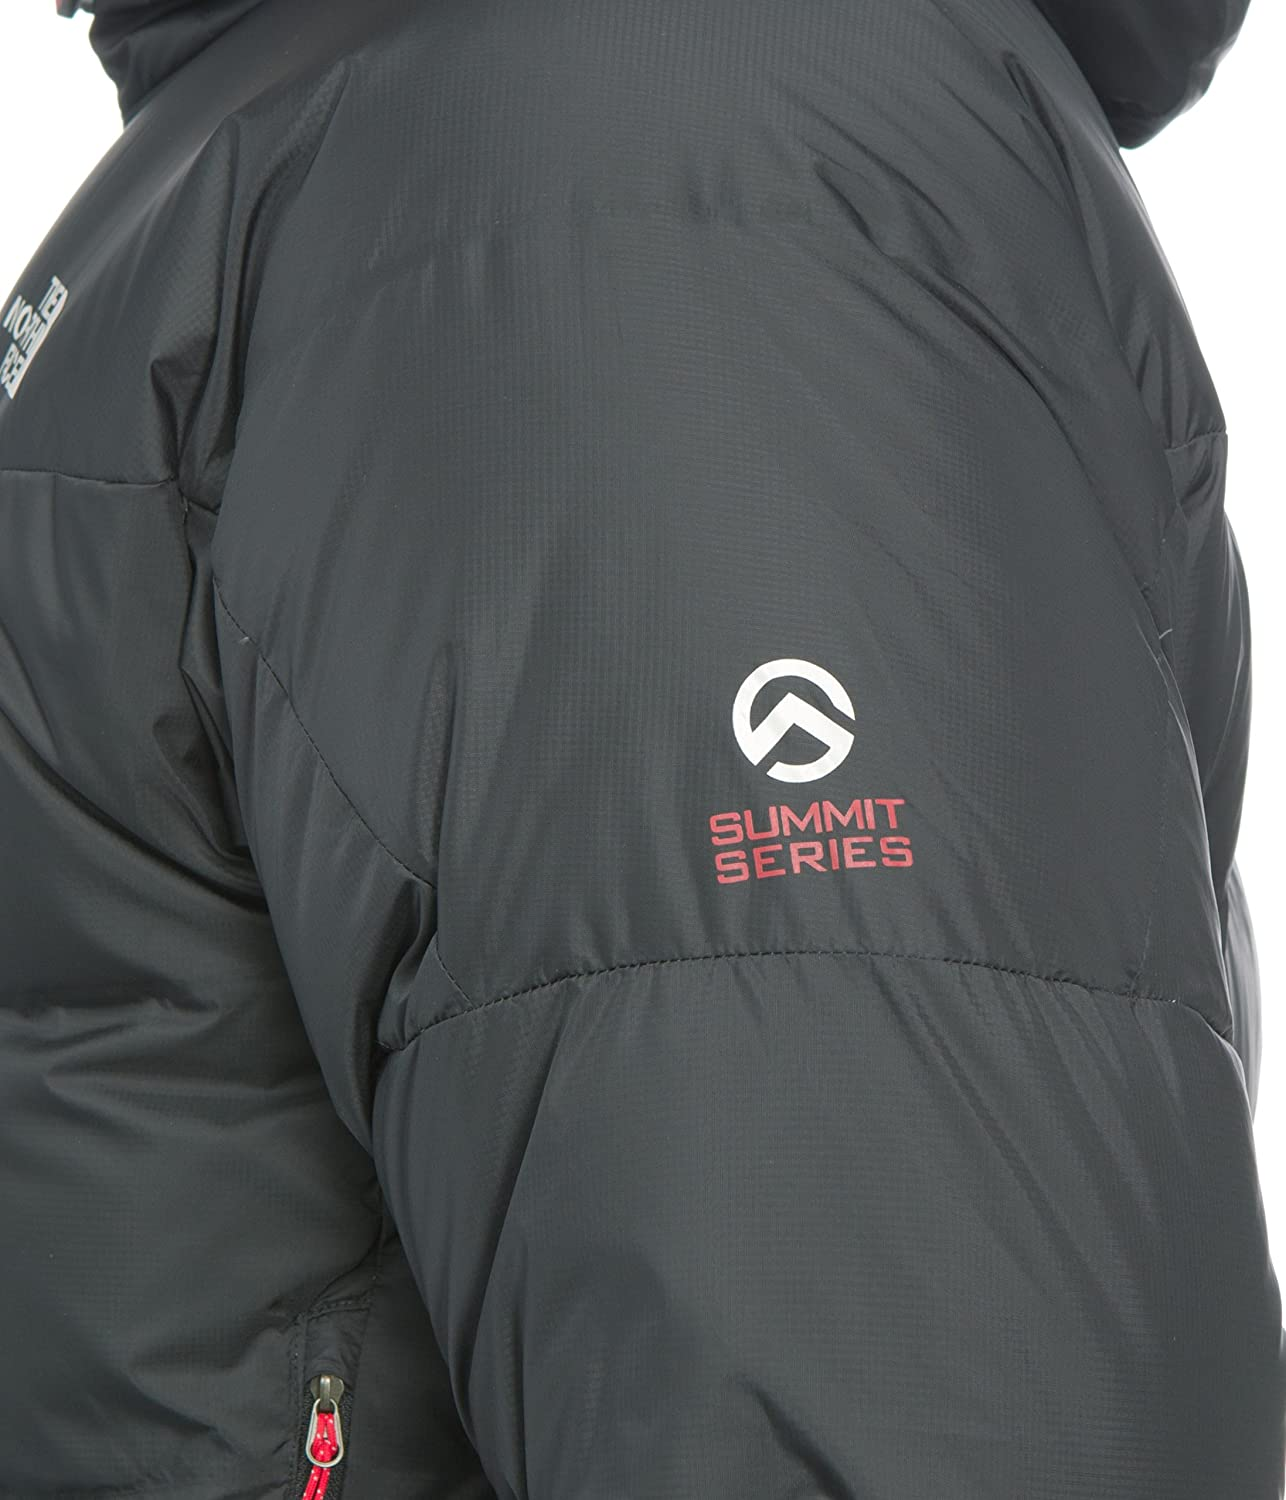 1a182abd2 The North Face Men's Prism Optimus Jacket down filled expedition coat 2013